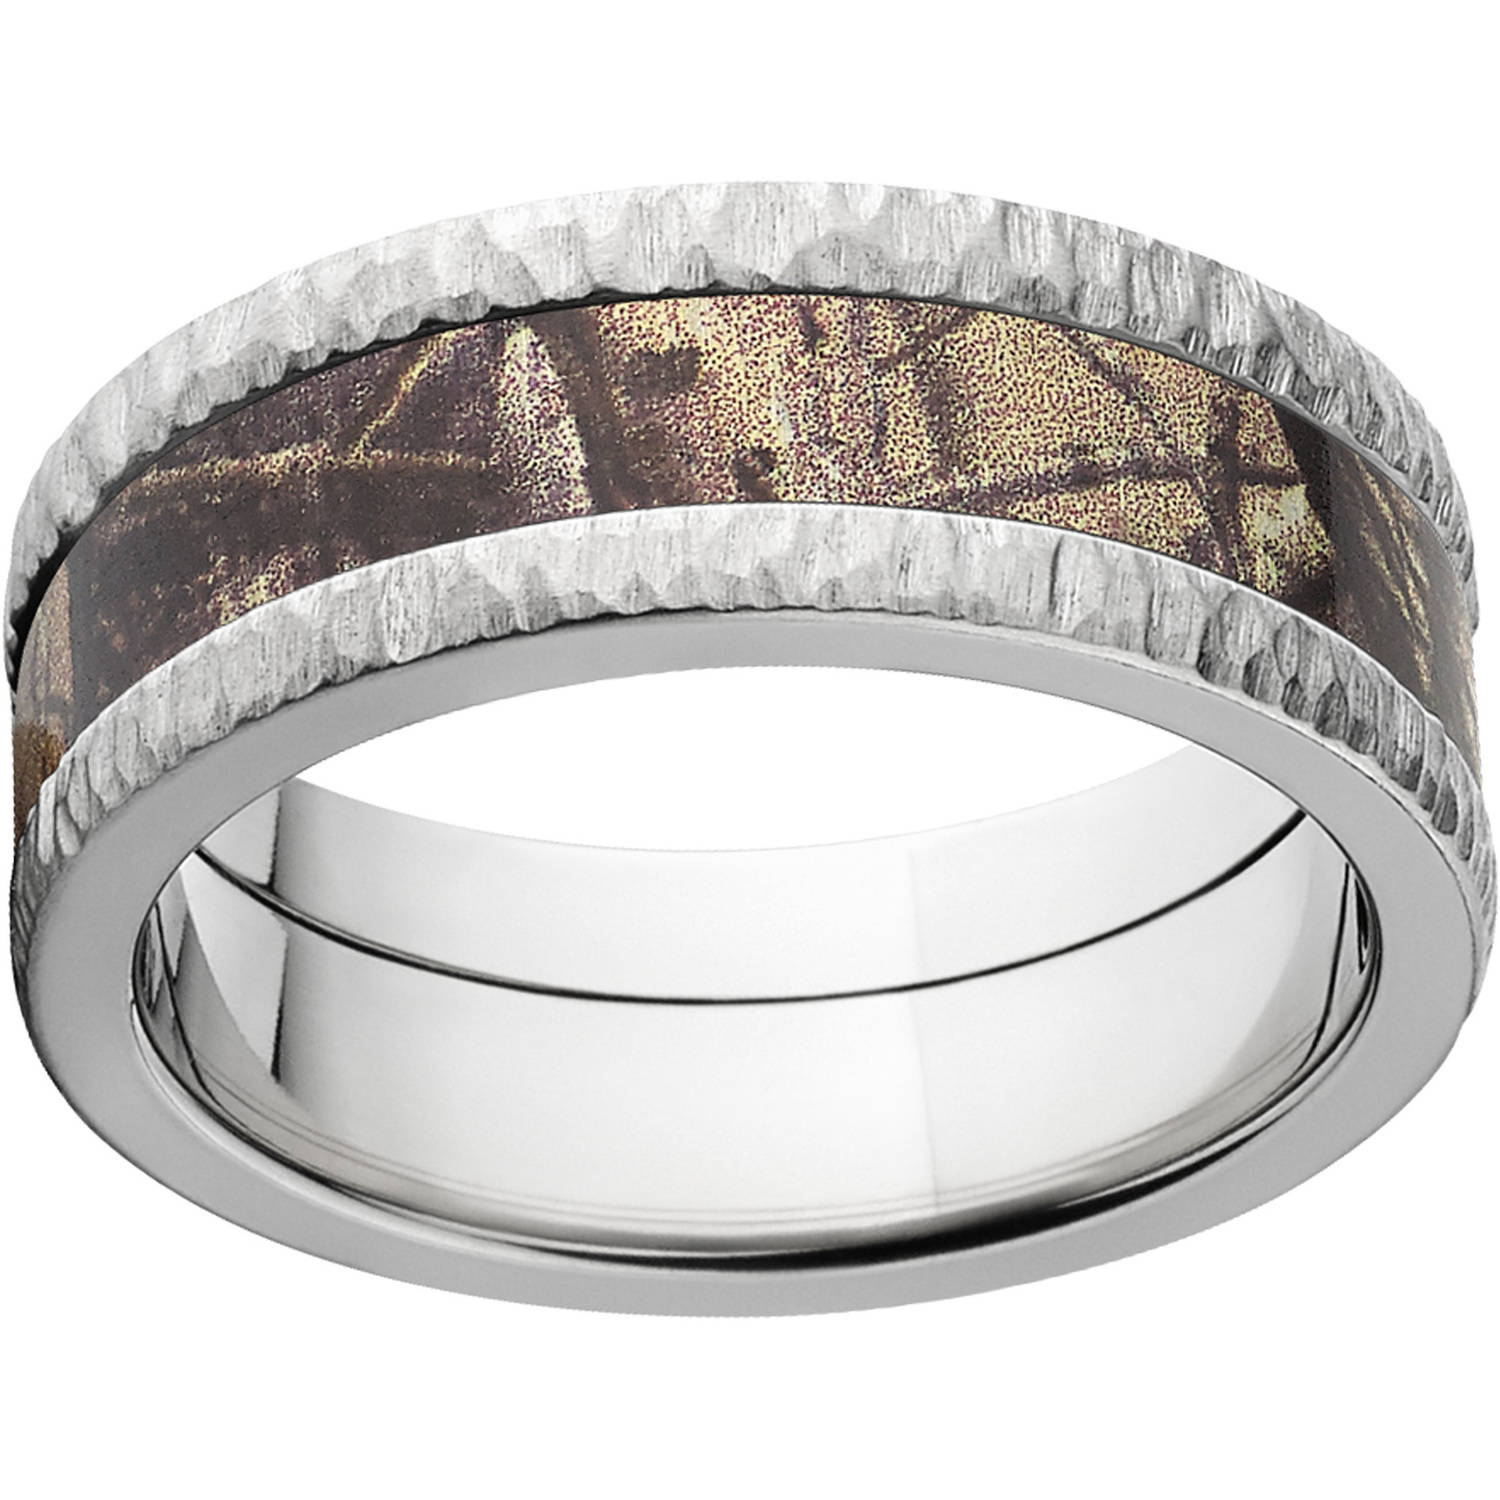 Realtree AP Men's Camo 8mm Stainless Steel Wedding Band with Tree Bark Edges and Deluxe Comfort Fit by Generic